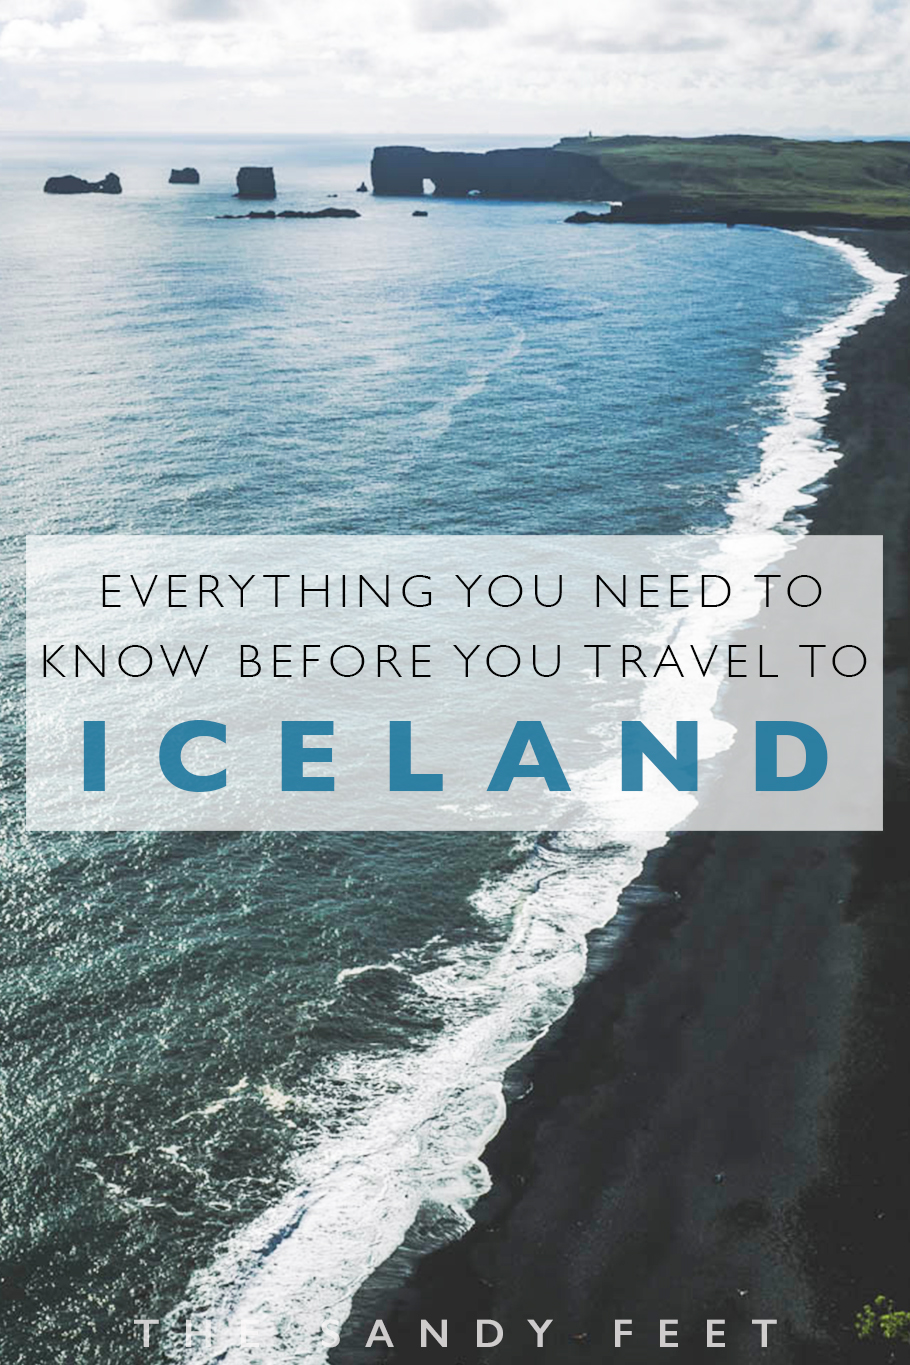 Iceland Travel Tips | 7 Incredibly Useful Things To Know Before You Visit Iceland